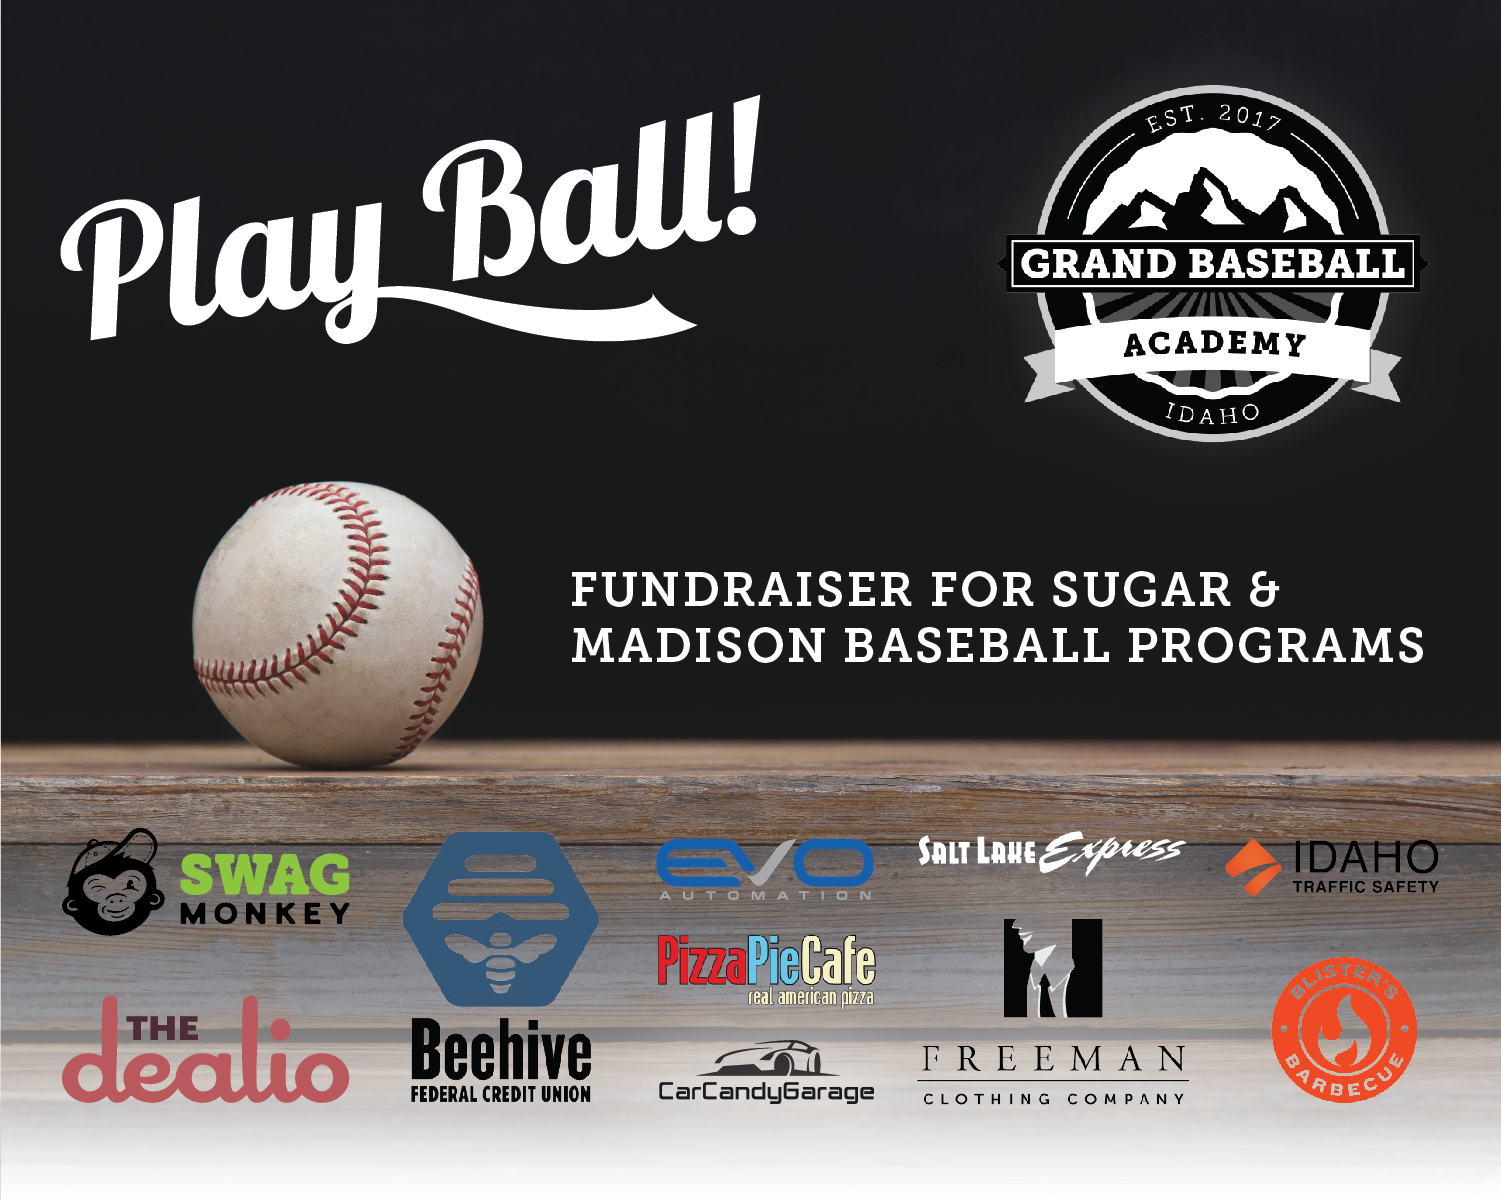 Grand Baseball Academy is also a fundraiser for Madison and Sugar-Salem Baseball Programs.